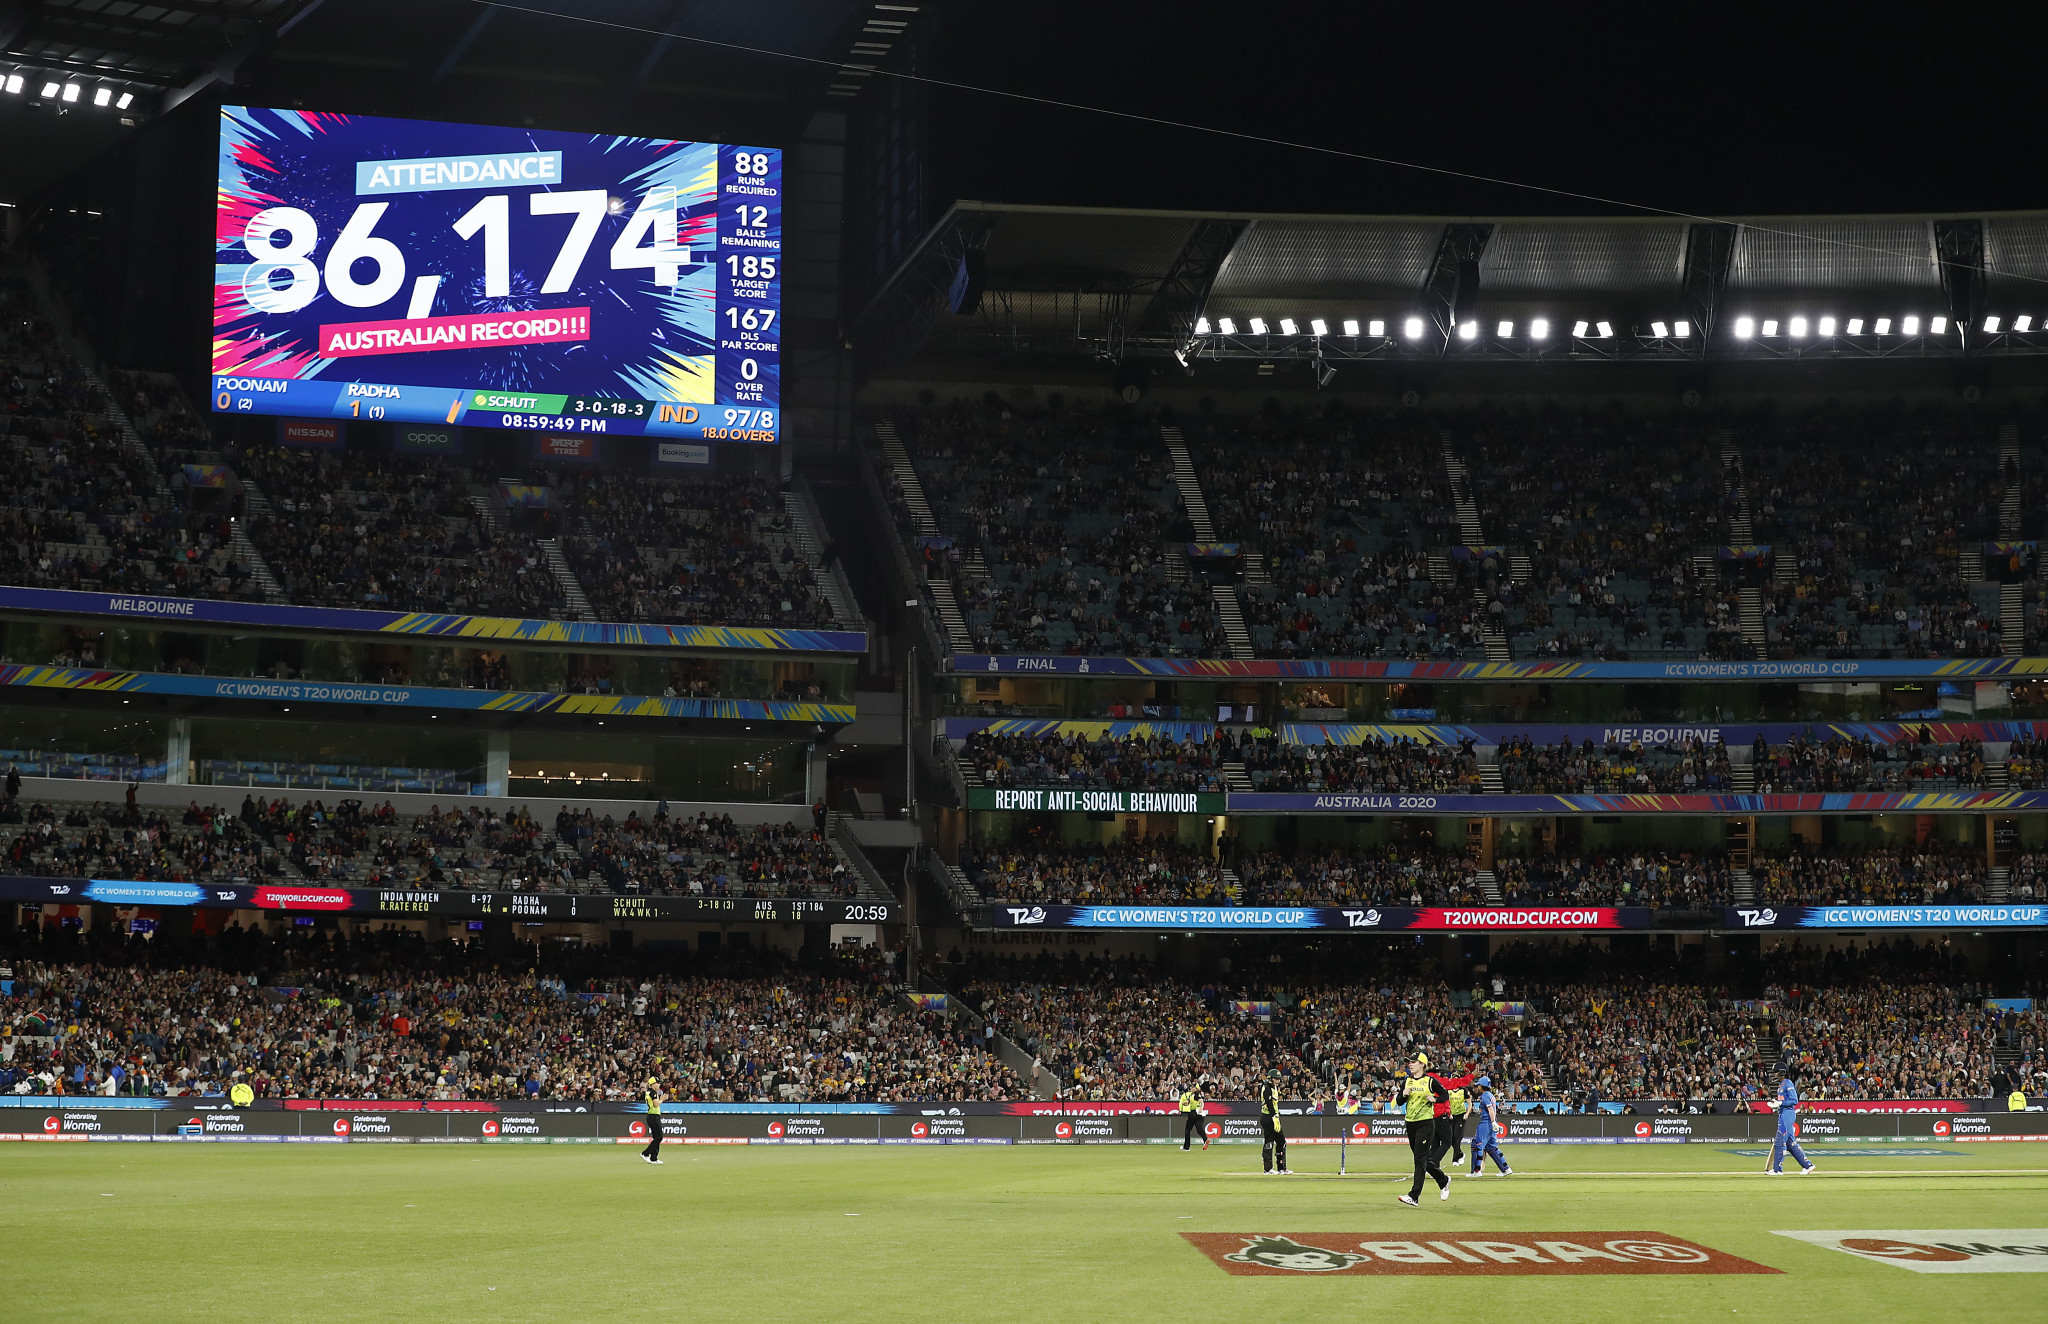 ICC releases record viewing figures for Women's T20 World Cup